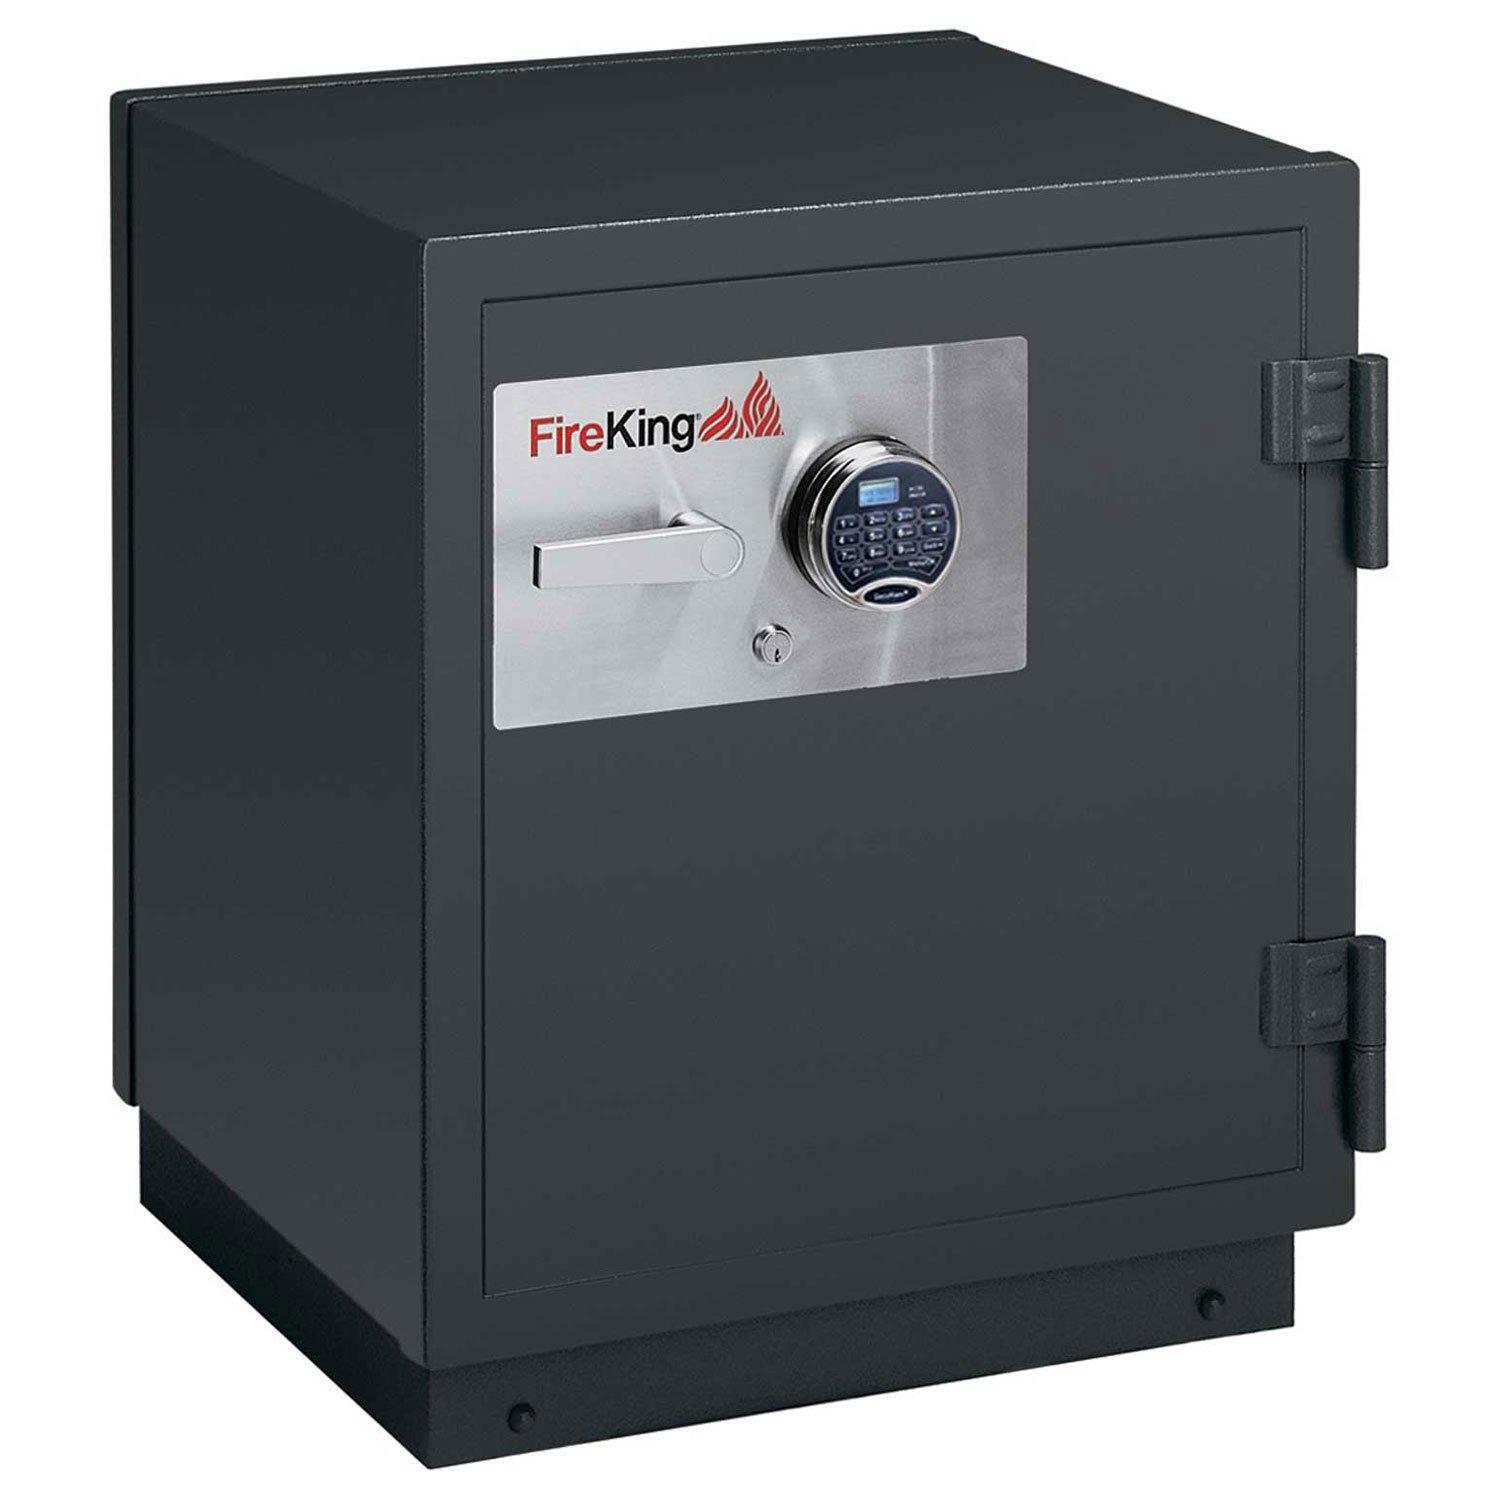 Fireking KR2115-2GR 2-Hour Fire with Impact & Burglary Rated Safe, 30.38'' H x 25.5'' W x 22.88'' D/3.2 cu. ft., Graphite